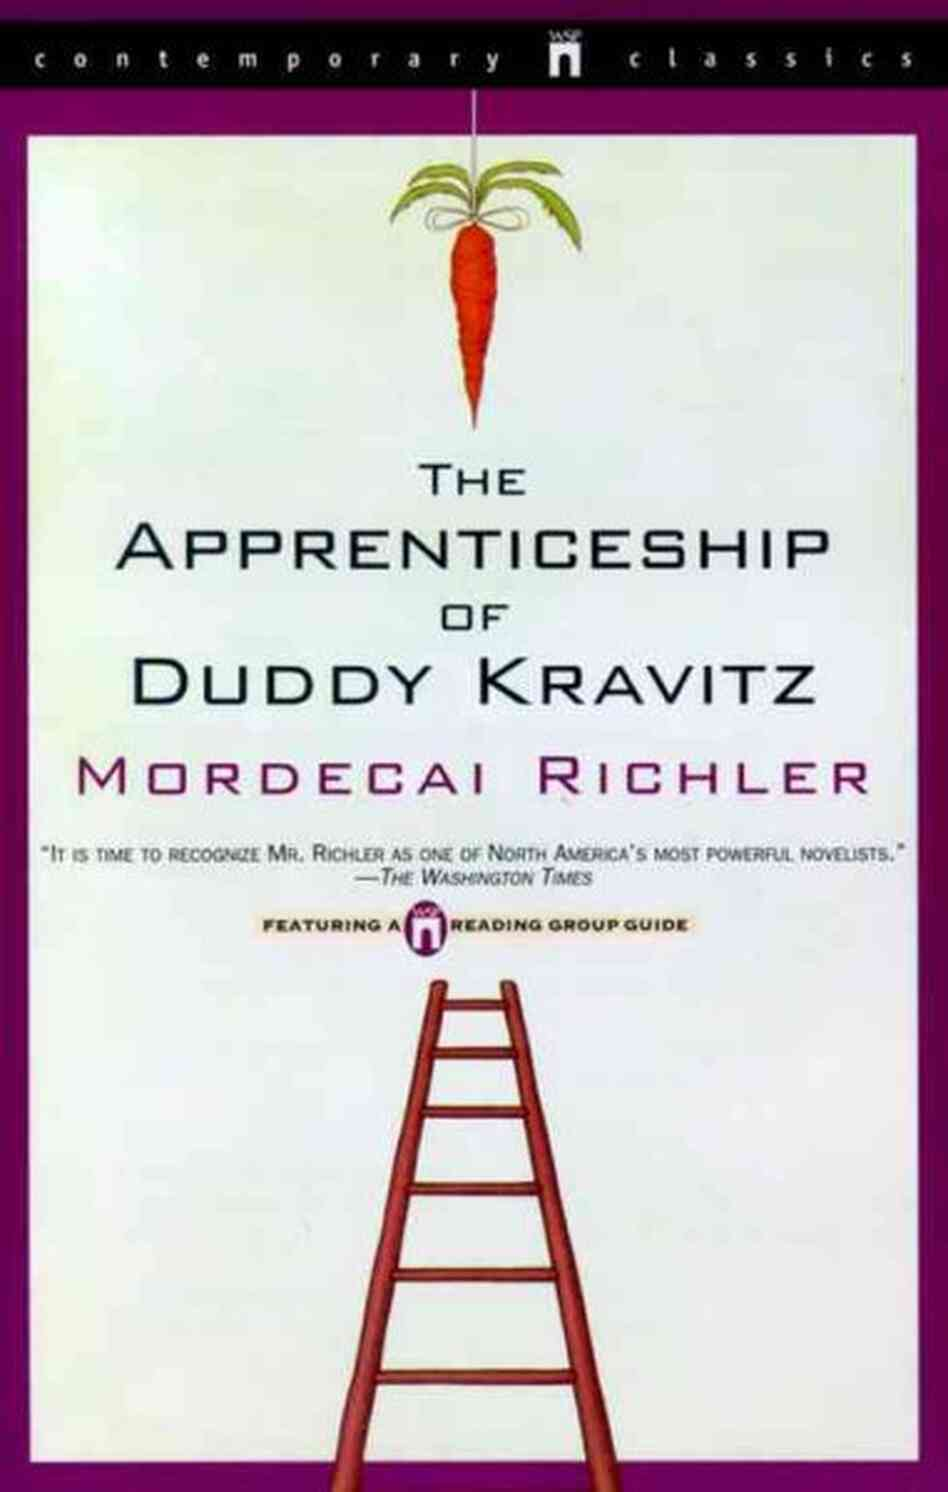 a literary analysis of the apprenticeship of duddy kravitz Mordecai richler was a canadian author, screenwriter and essayist his best known works are the apprenticeship of duddy kravitz (1959) and barney's ver.